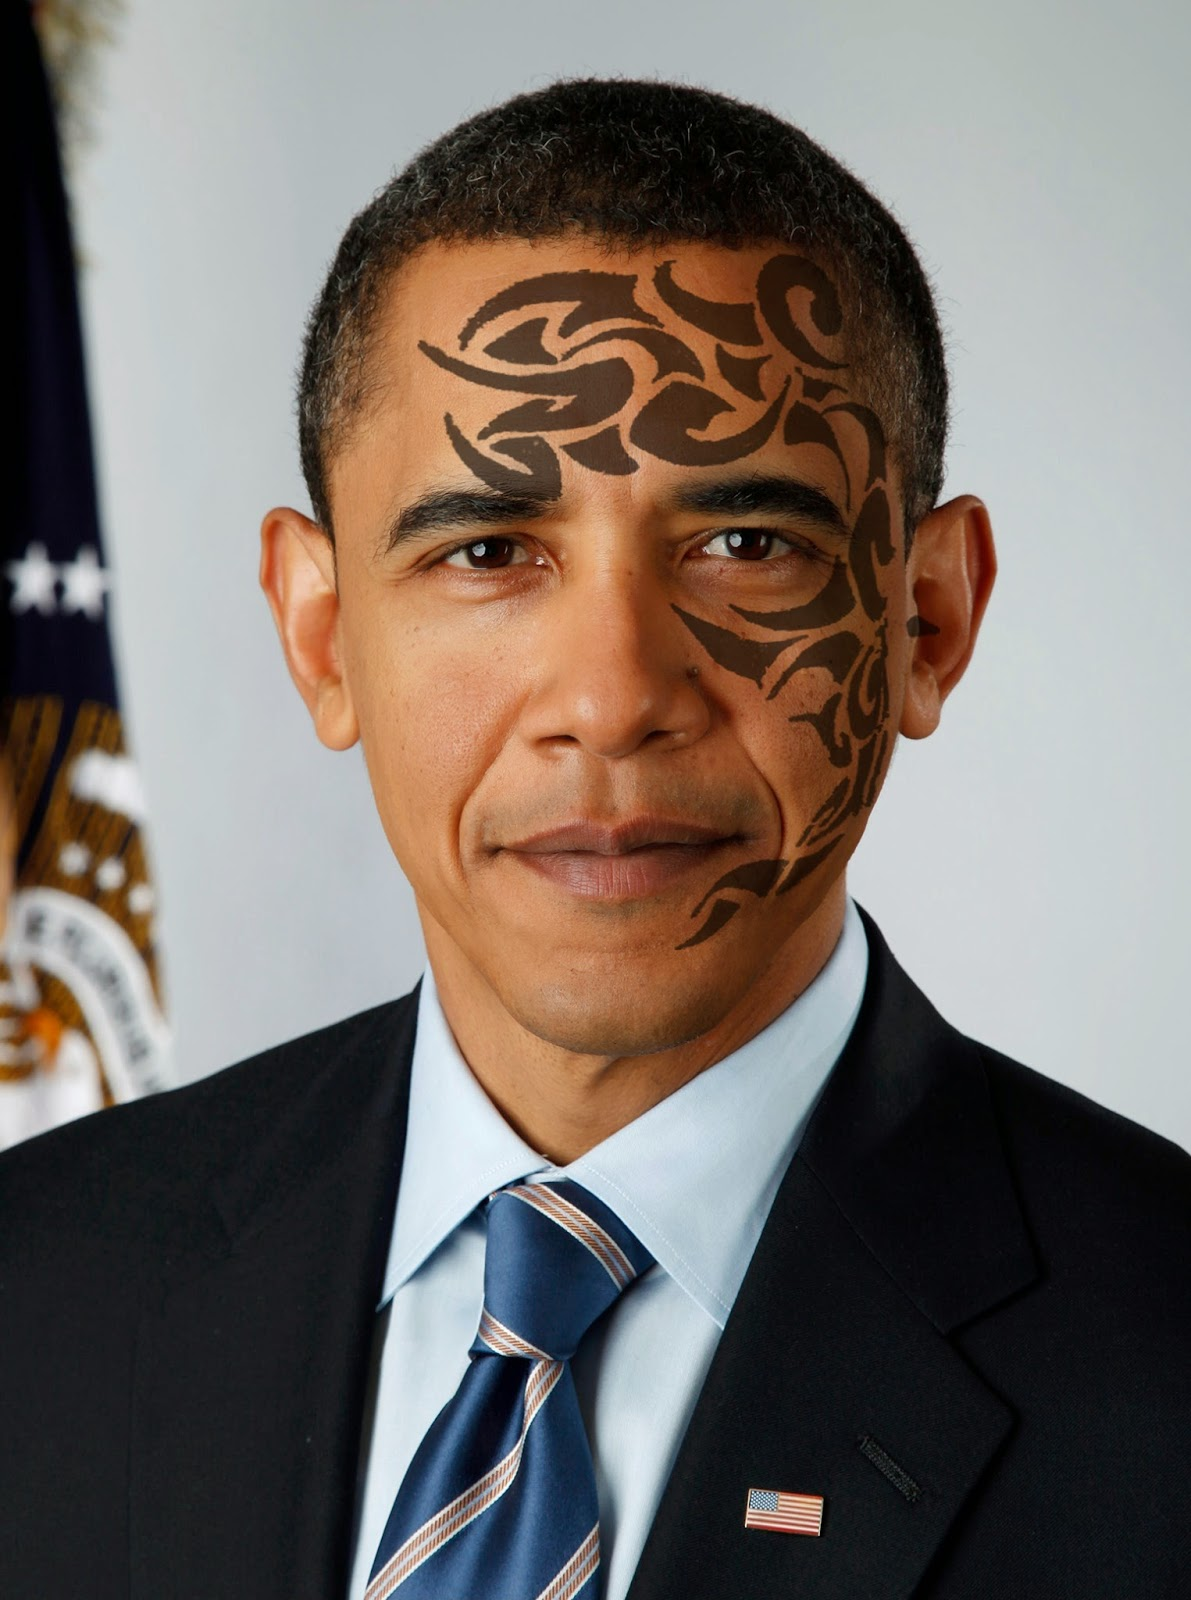 Obama gates quotes quotesgram for Does obama have a tattoo